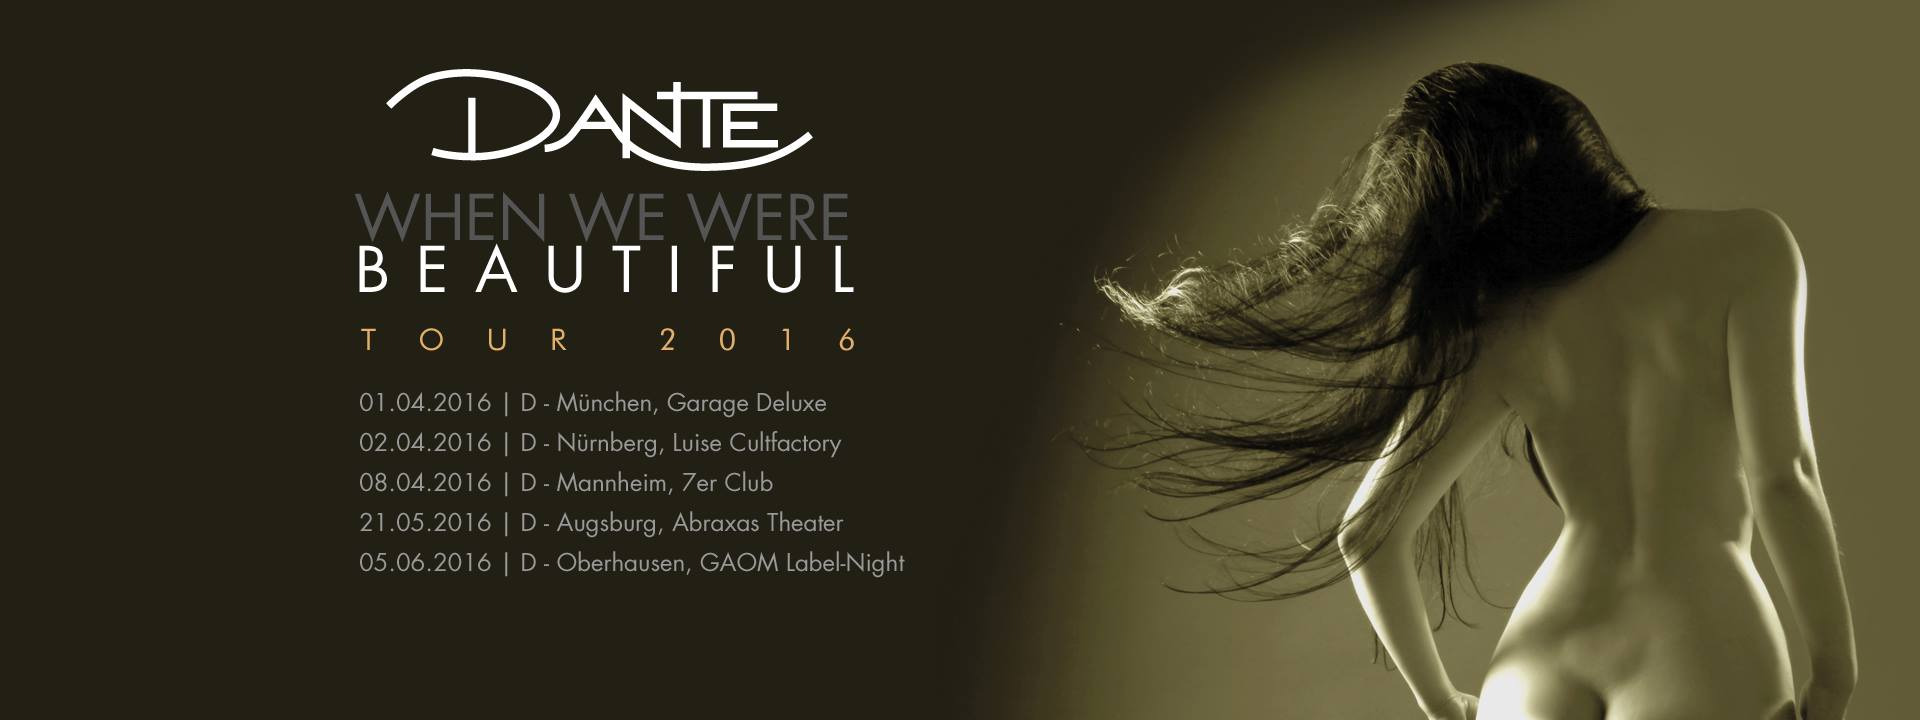 DANTE-live-2016-Backwhenwewerbeautiful